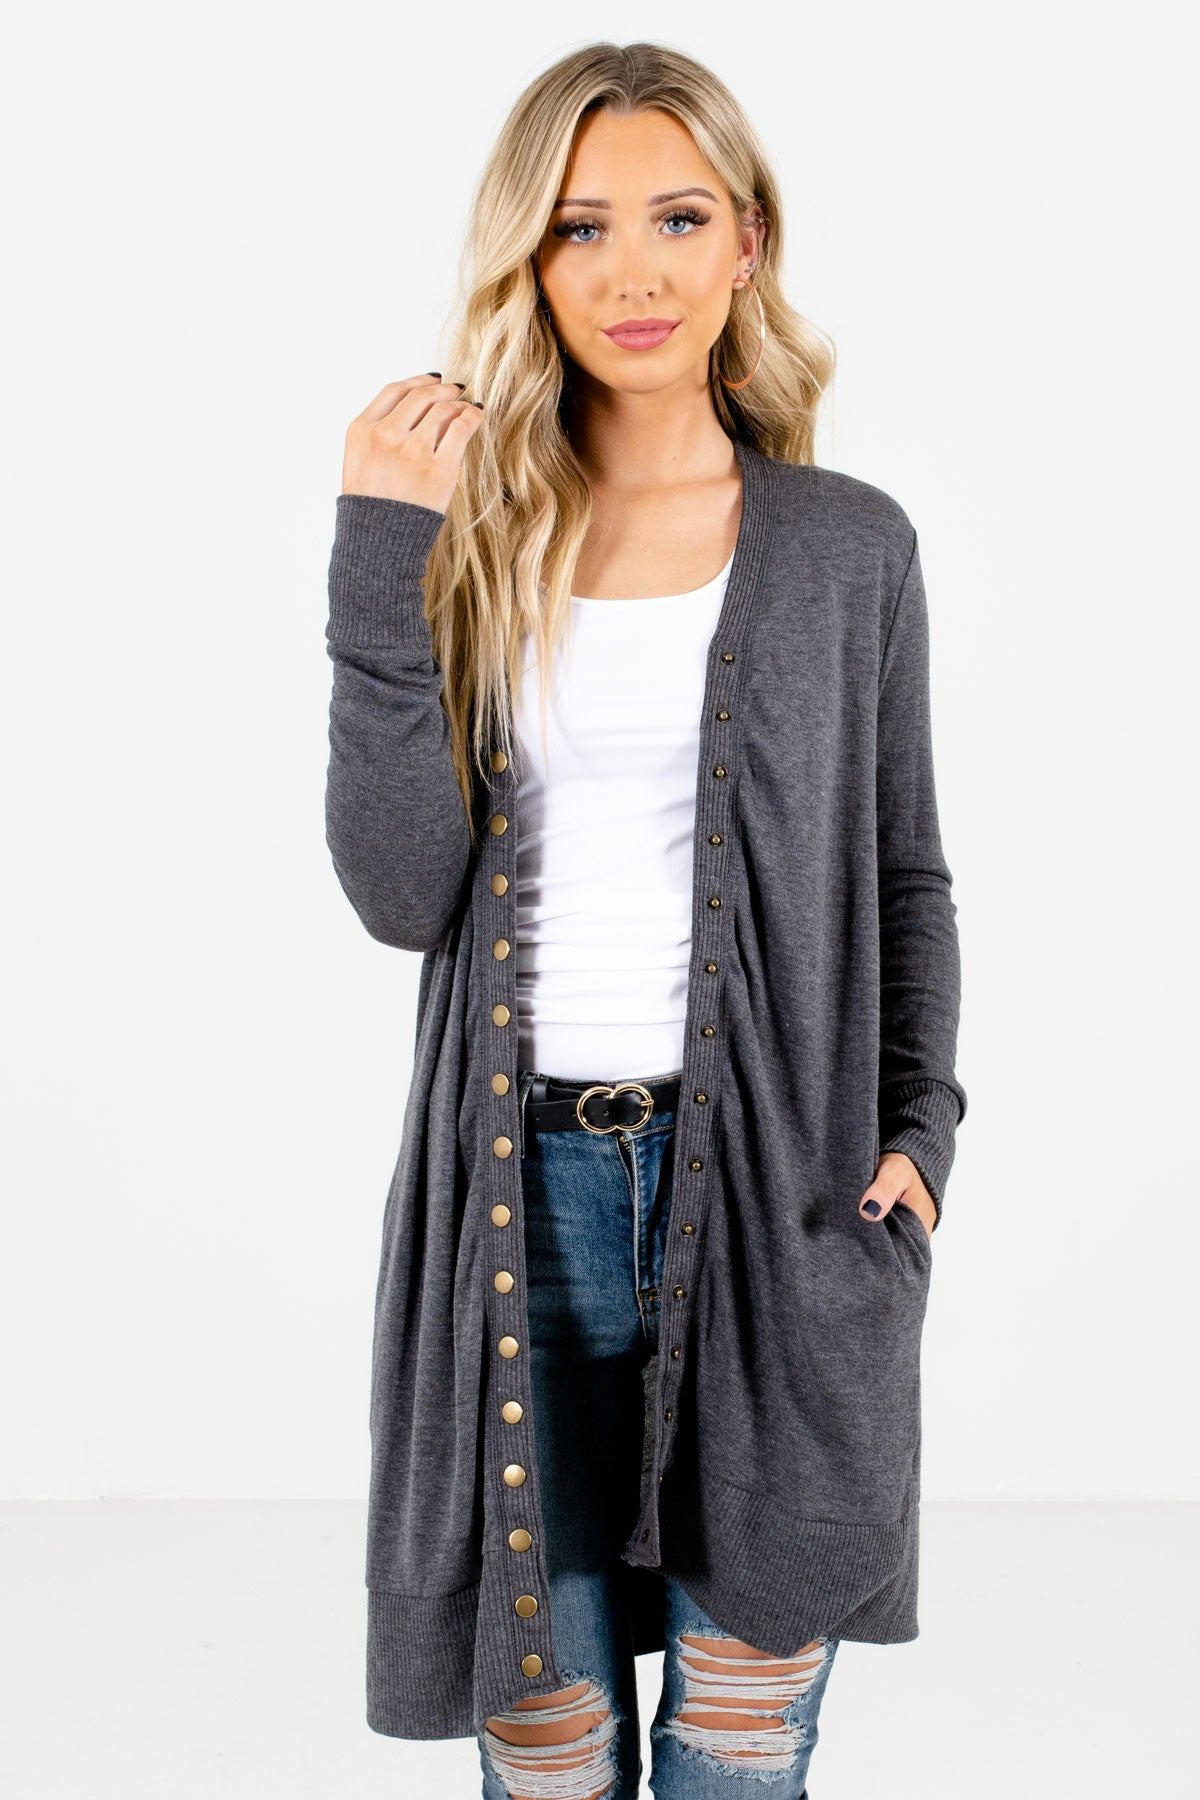 Charcoal Gray Snap Button-Up Front Boutique Cardigans for Women